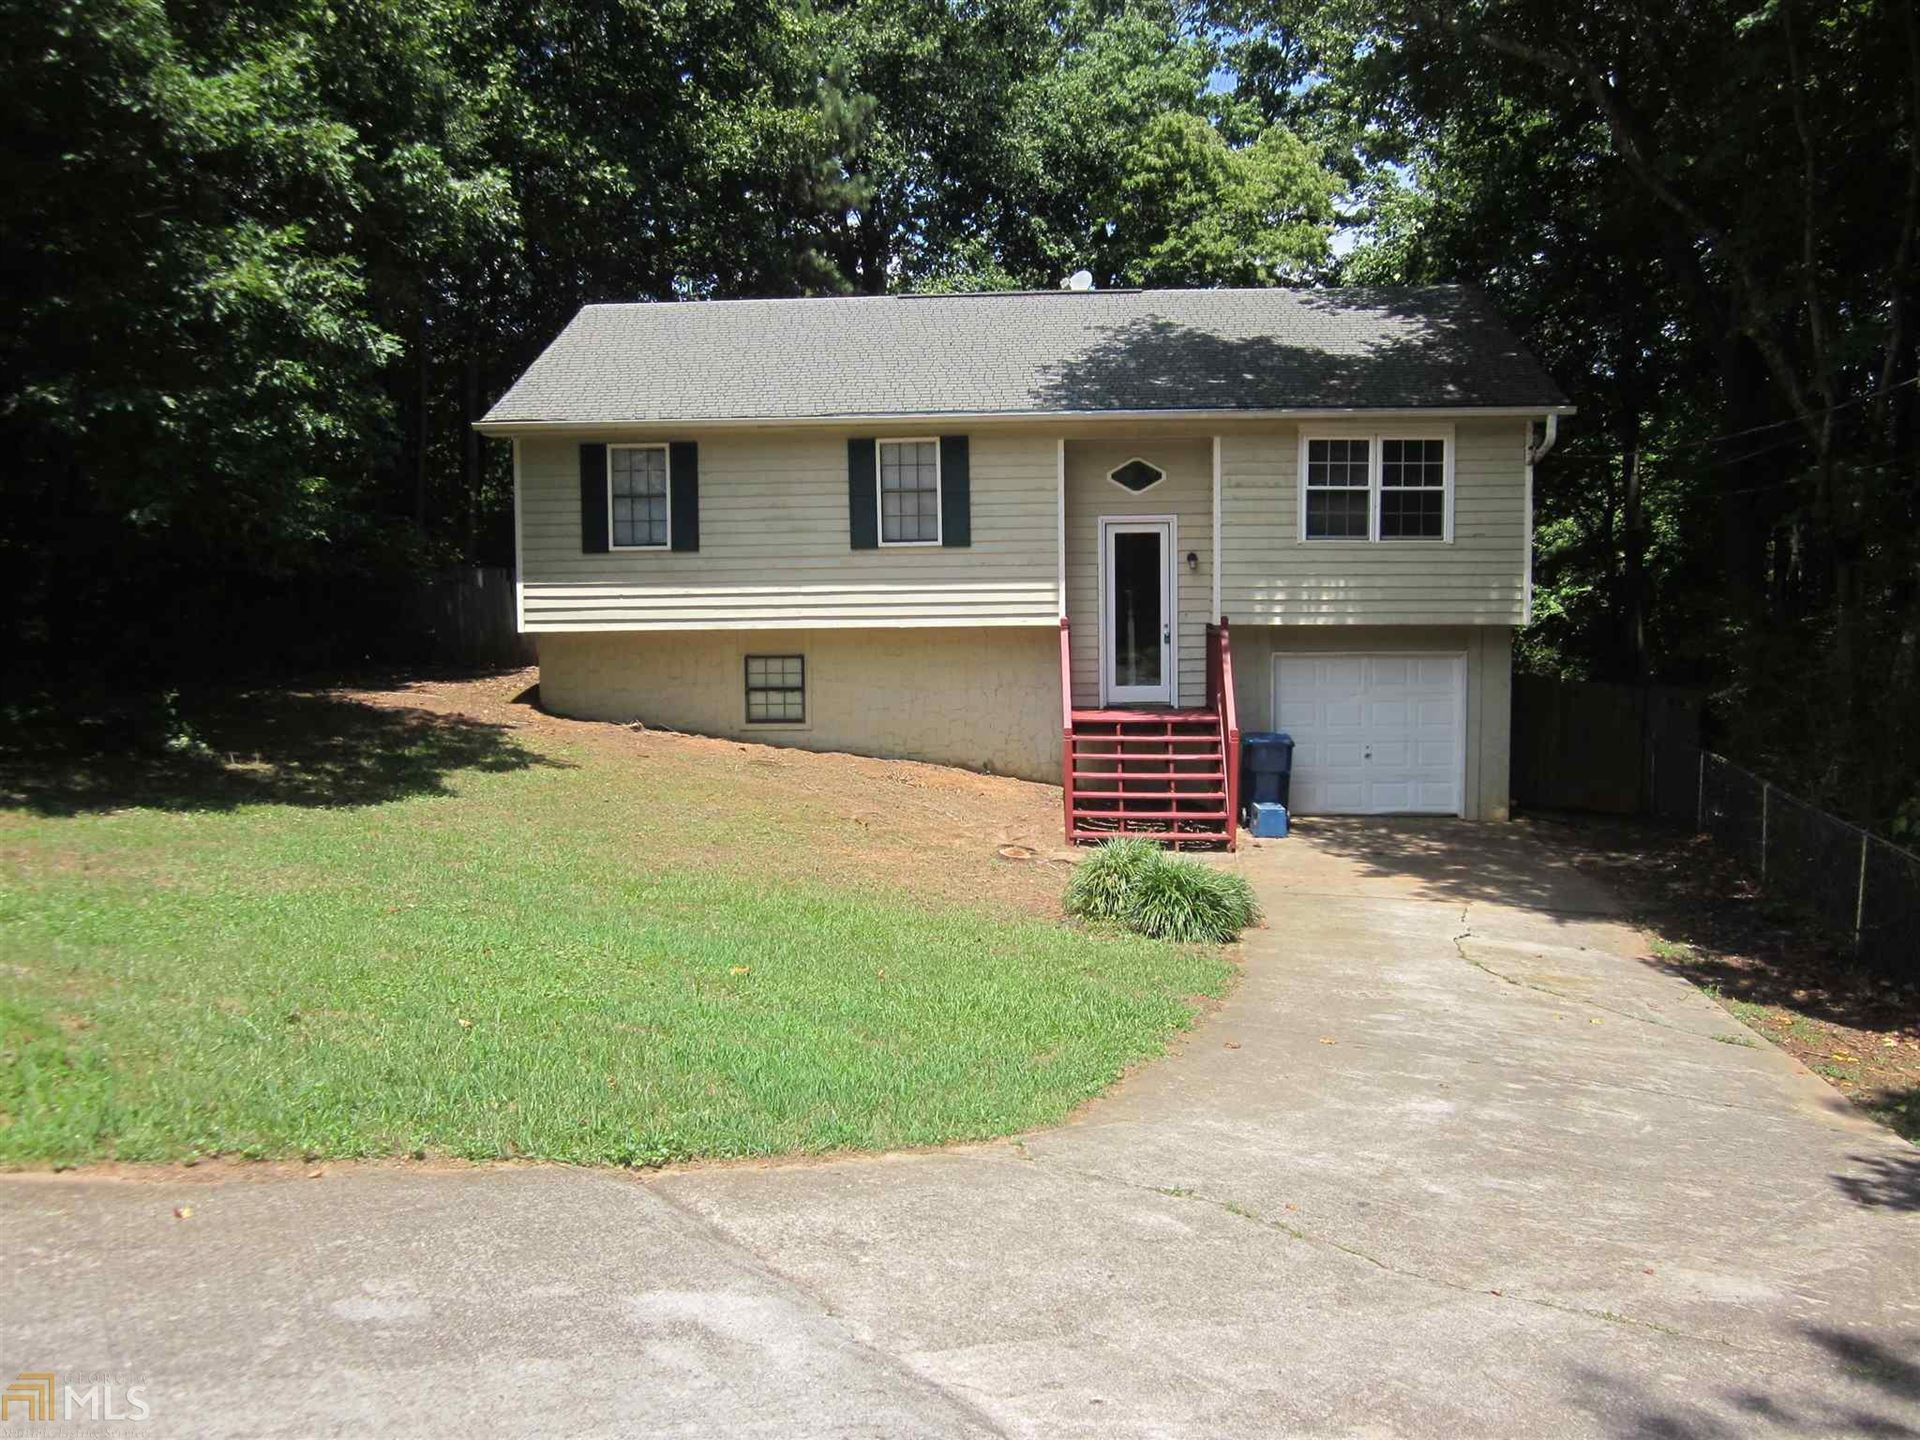 2831 Pine Log Way, Buford, GA 30519 - MLS#: 8877831